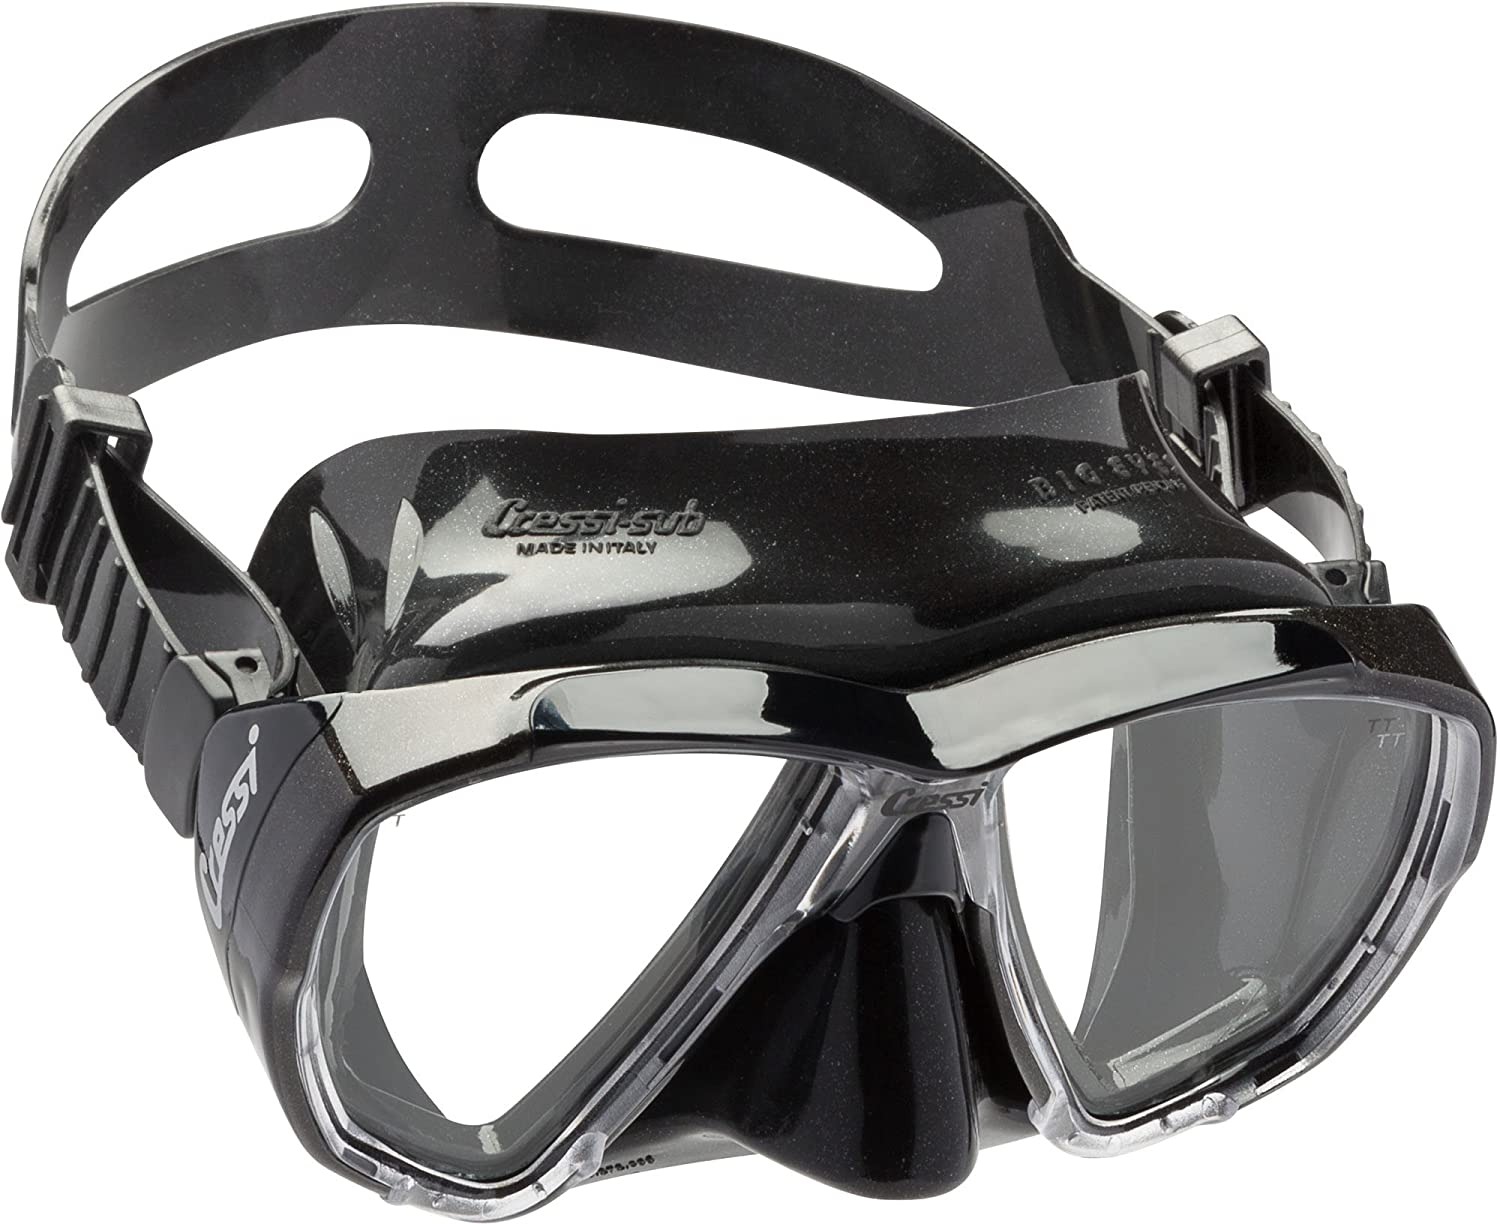 Big Eyes: made in Italy black//blue Cressi U.S.A DS262020 Cressi Adult Dive Mask with Inclined Lens for Scuba Diving optical lenses available